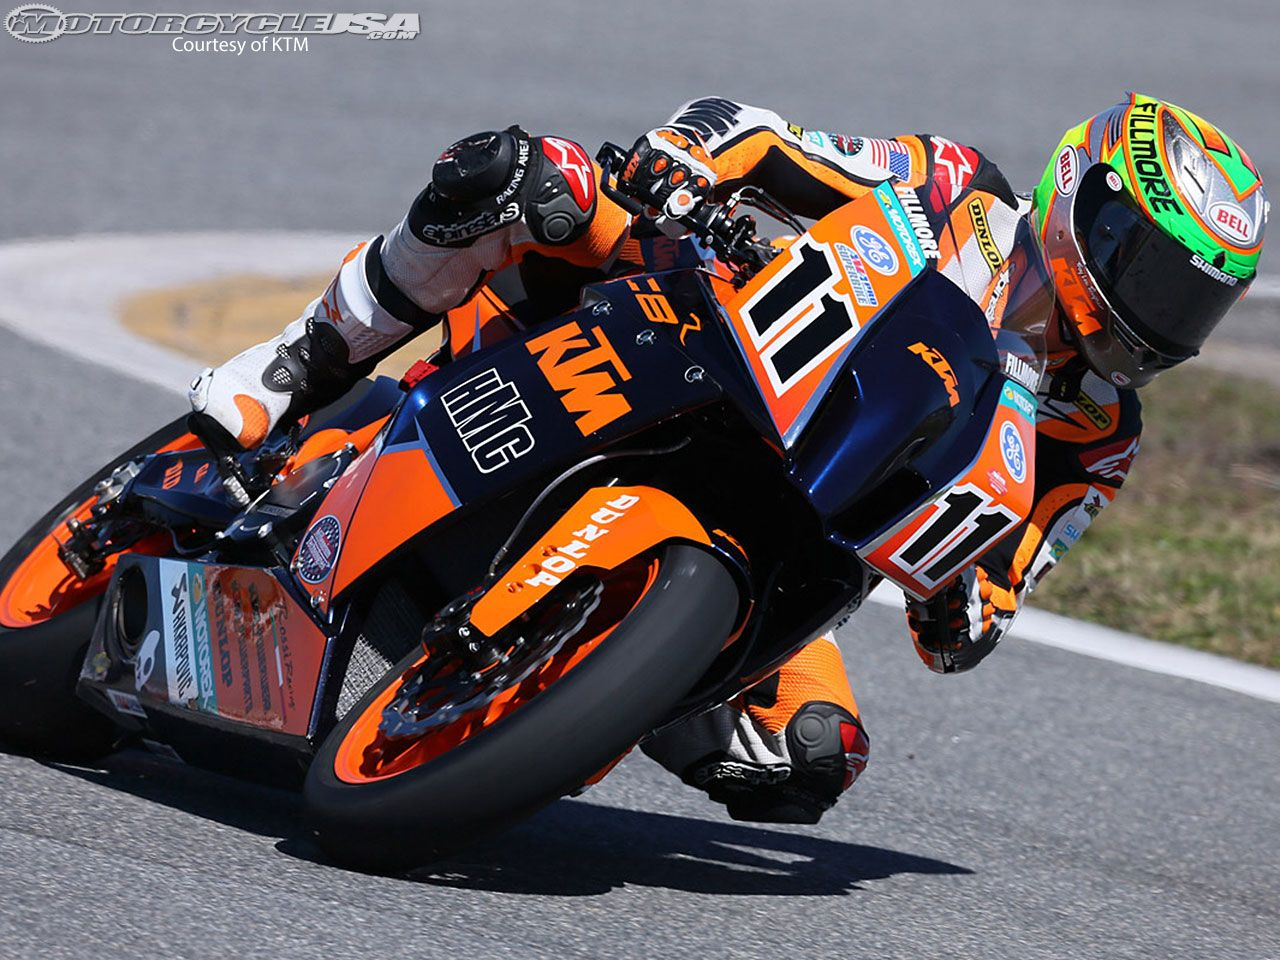 KTM/HMC to Compete in Superbike Shootout Product Reviews